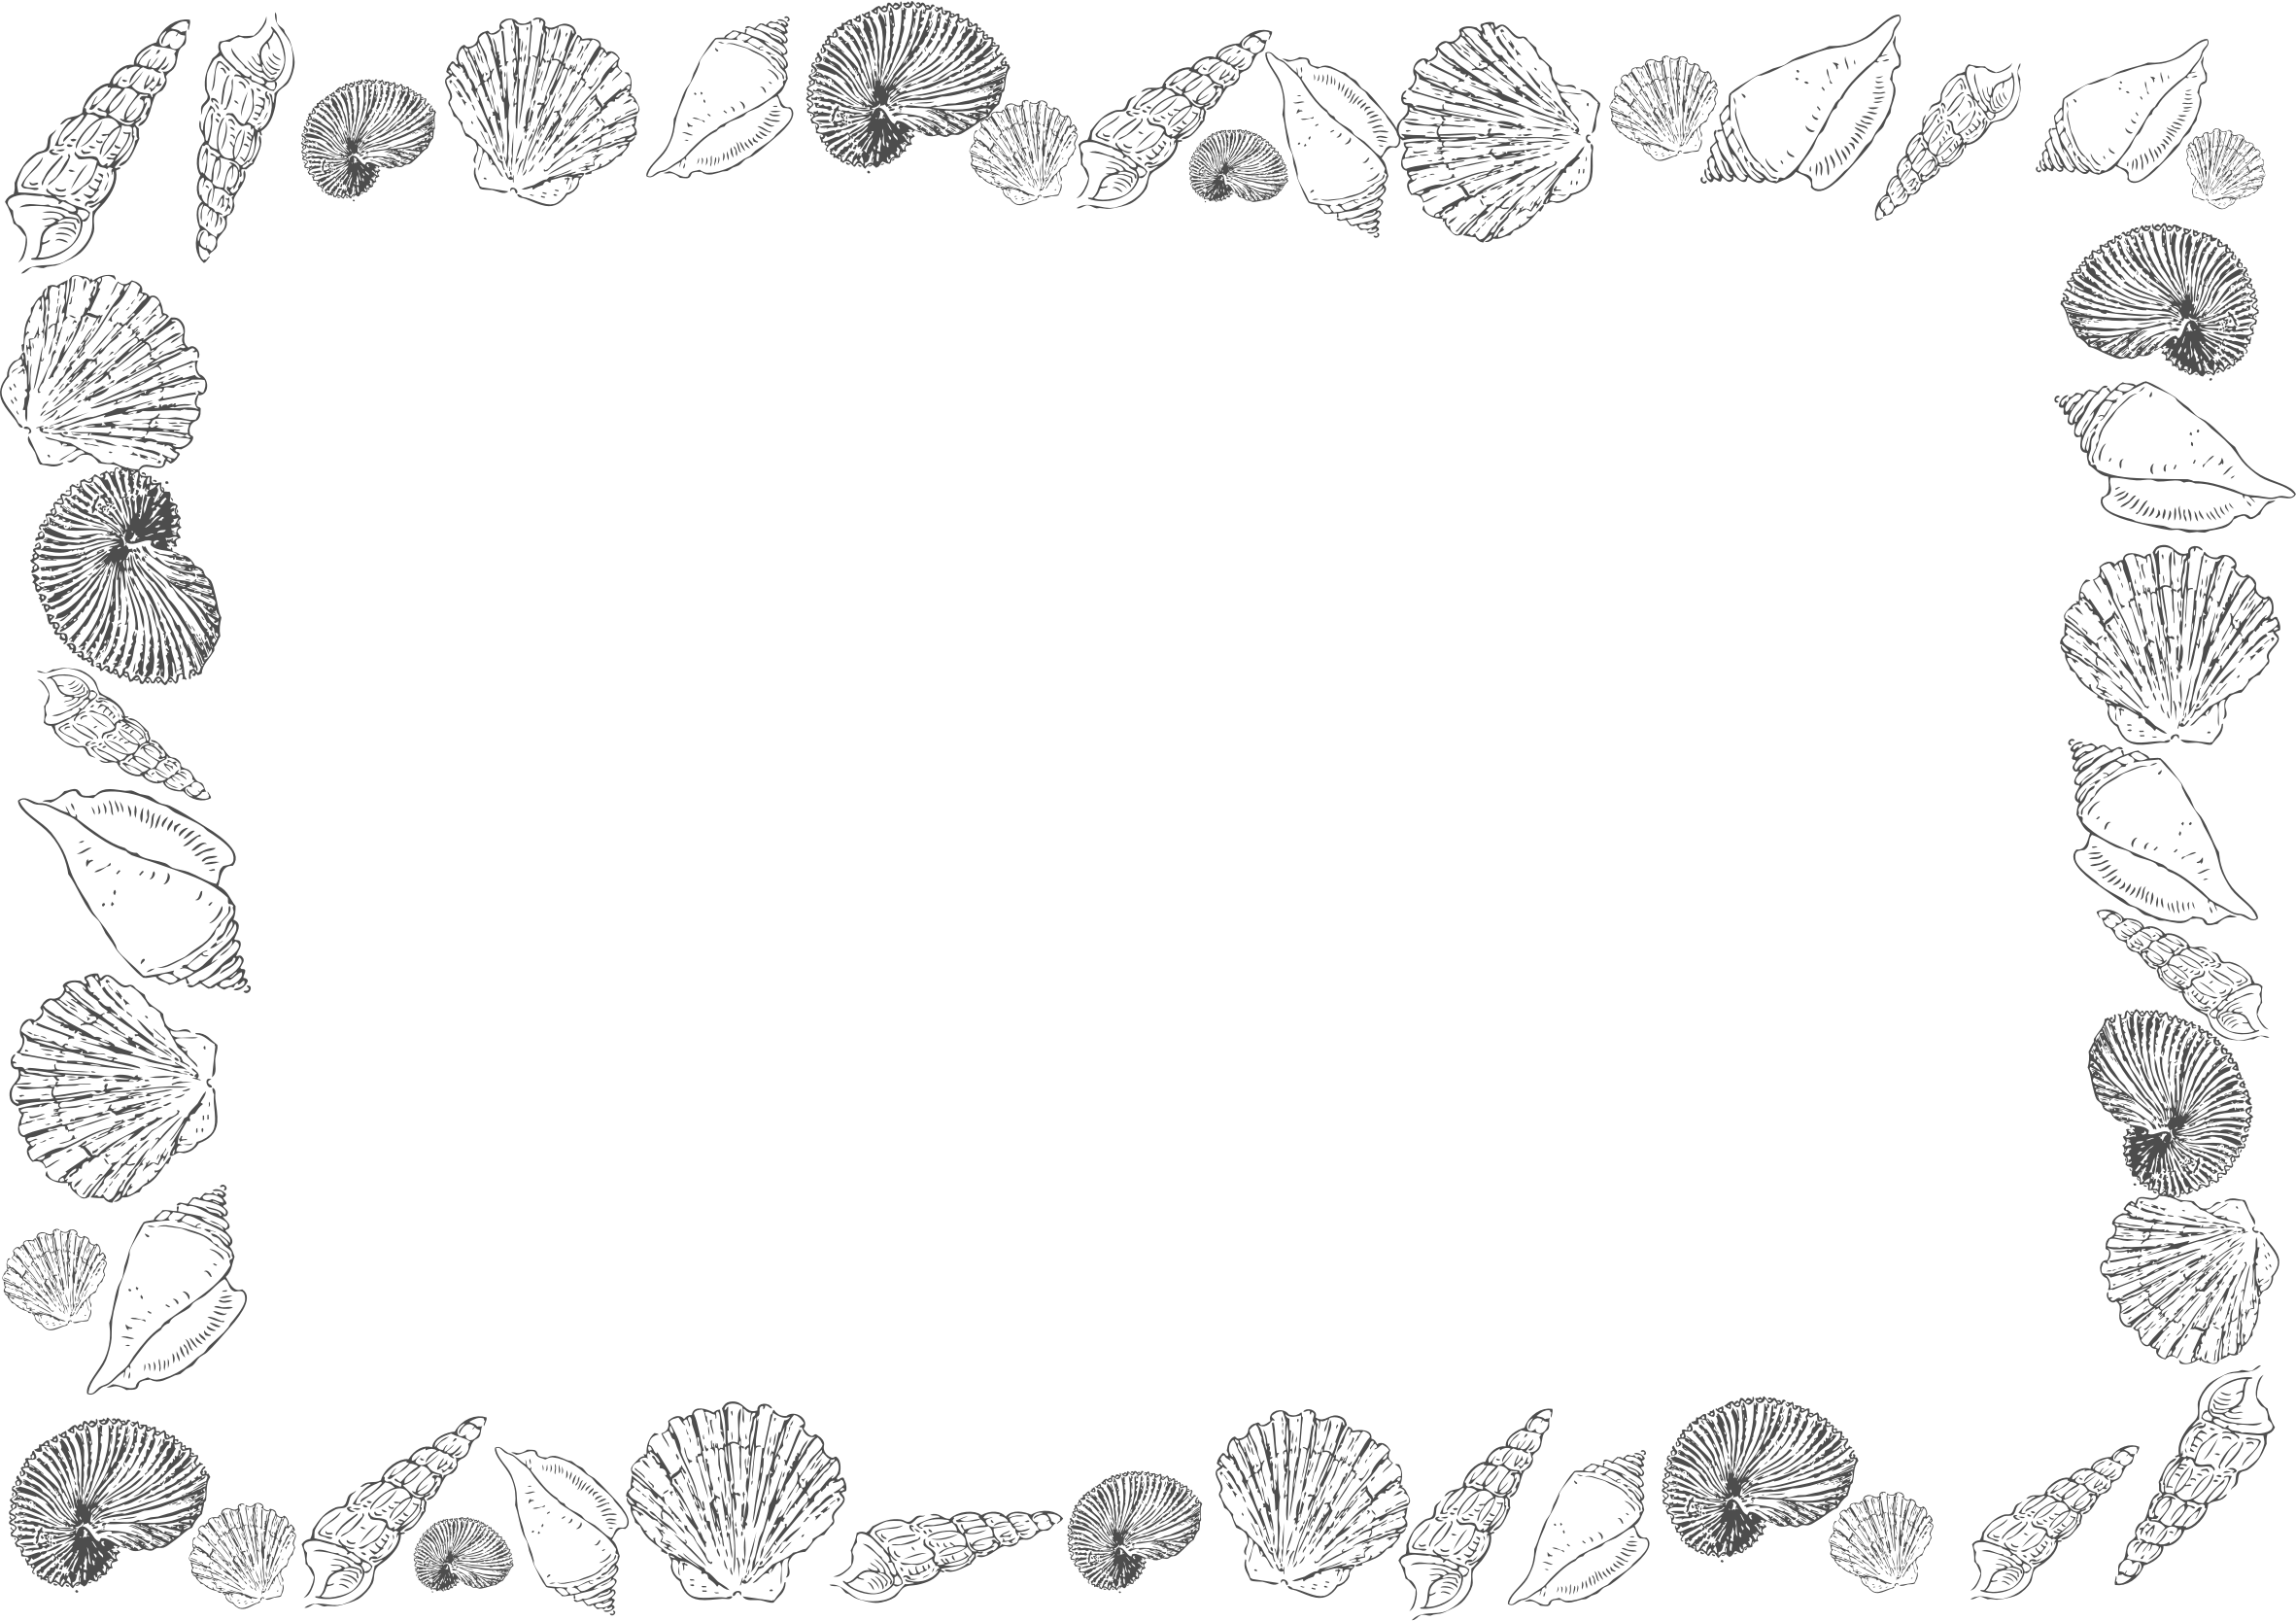 Shell clipart frame. A big image png